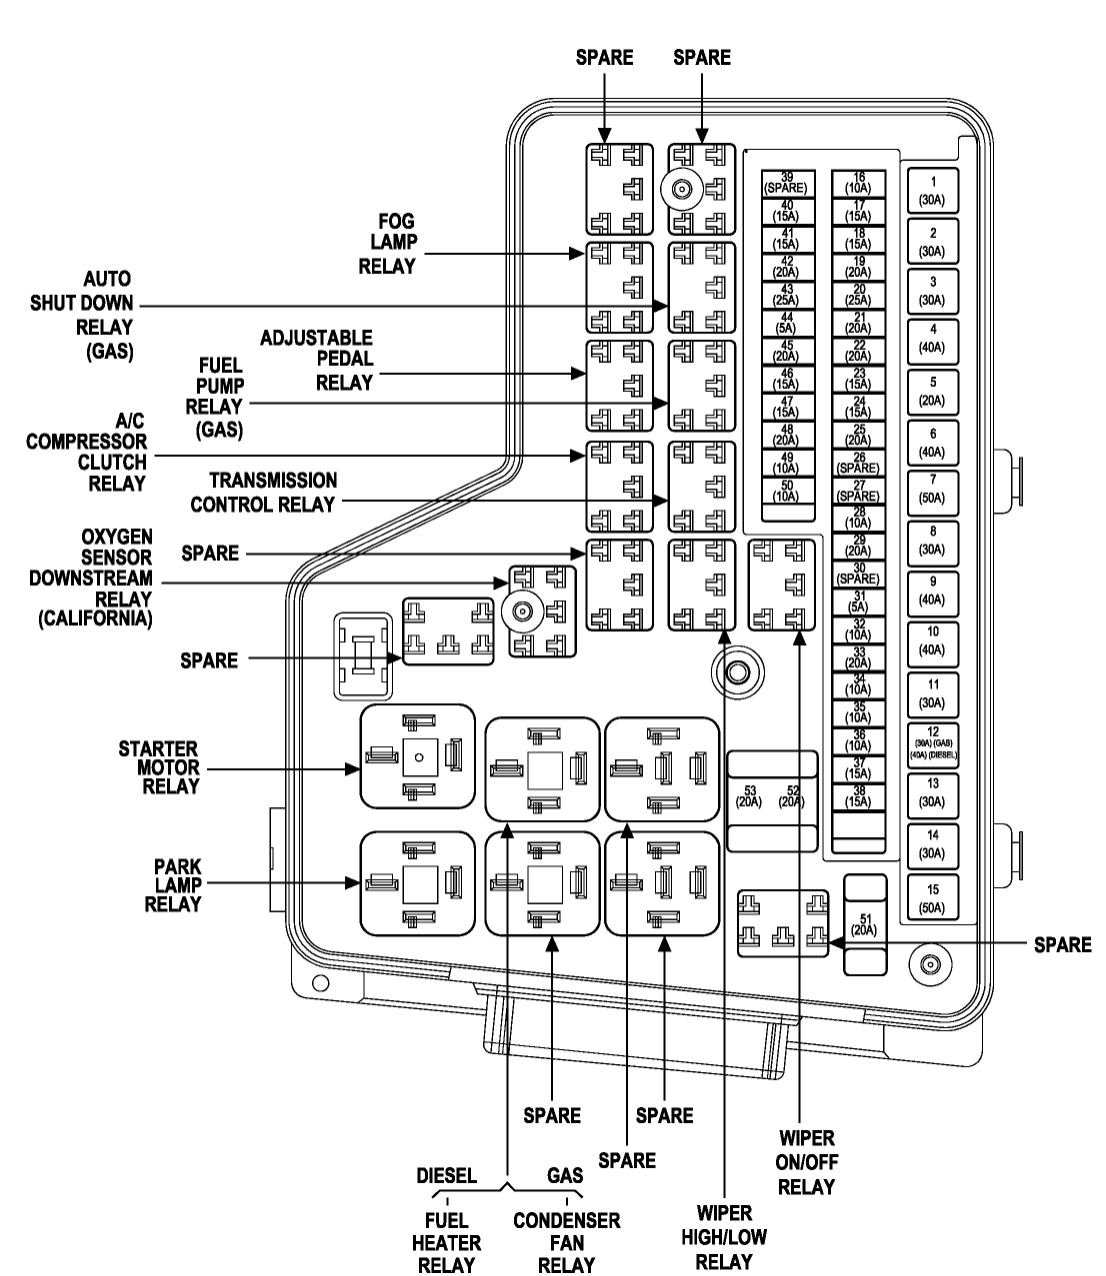 Diagram 1998 Dodge Ram 2500 Fuse Box Diagram Full Version Hd Quality Box Diagram Scamdiagram2a Clubexcalibur It